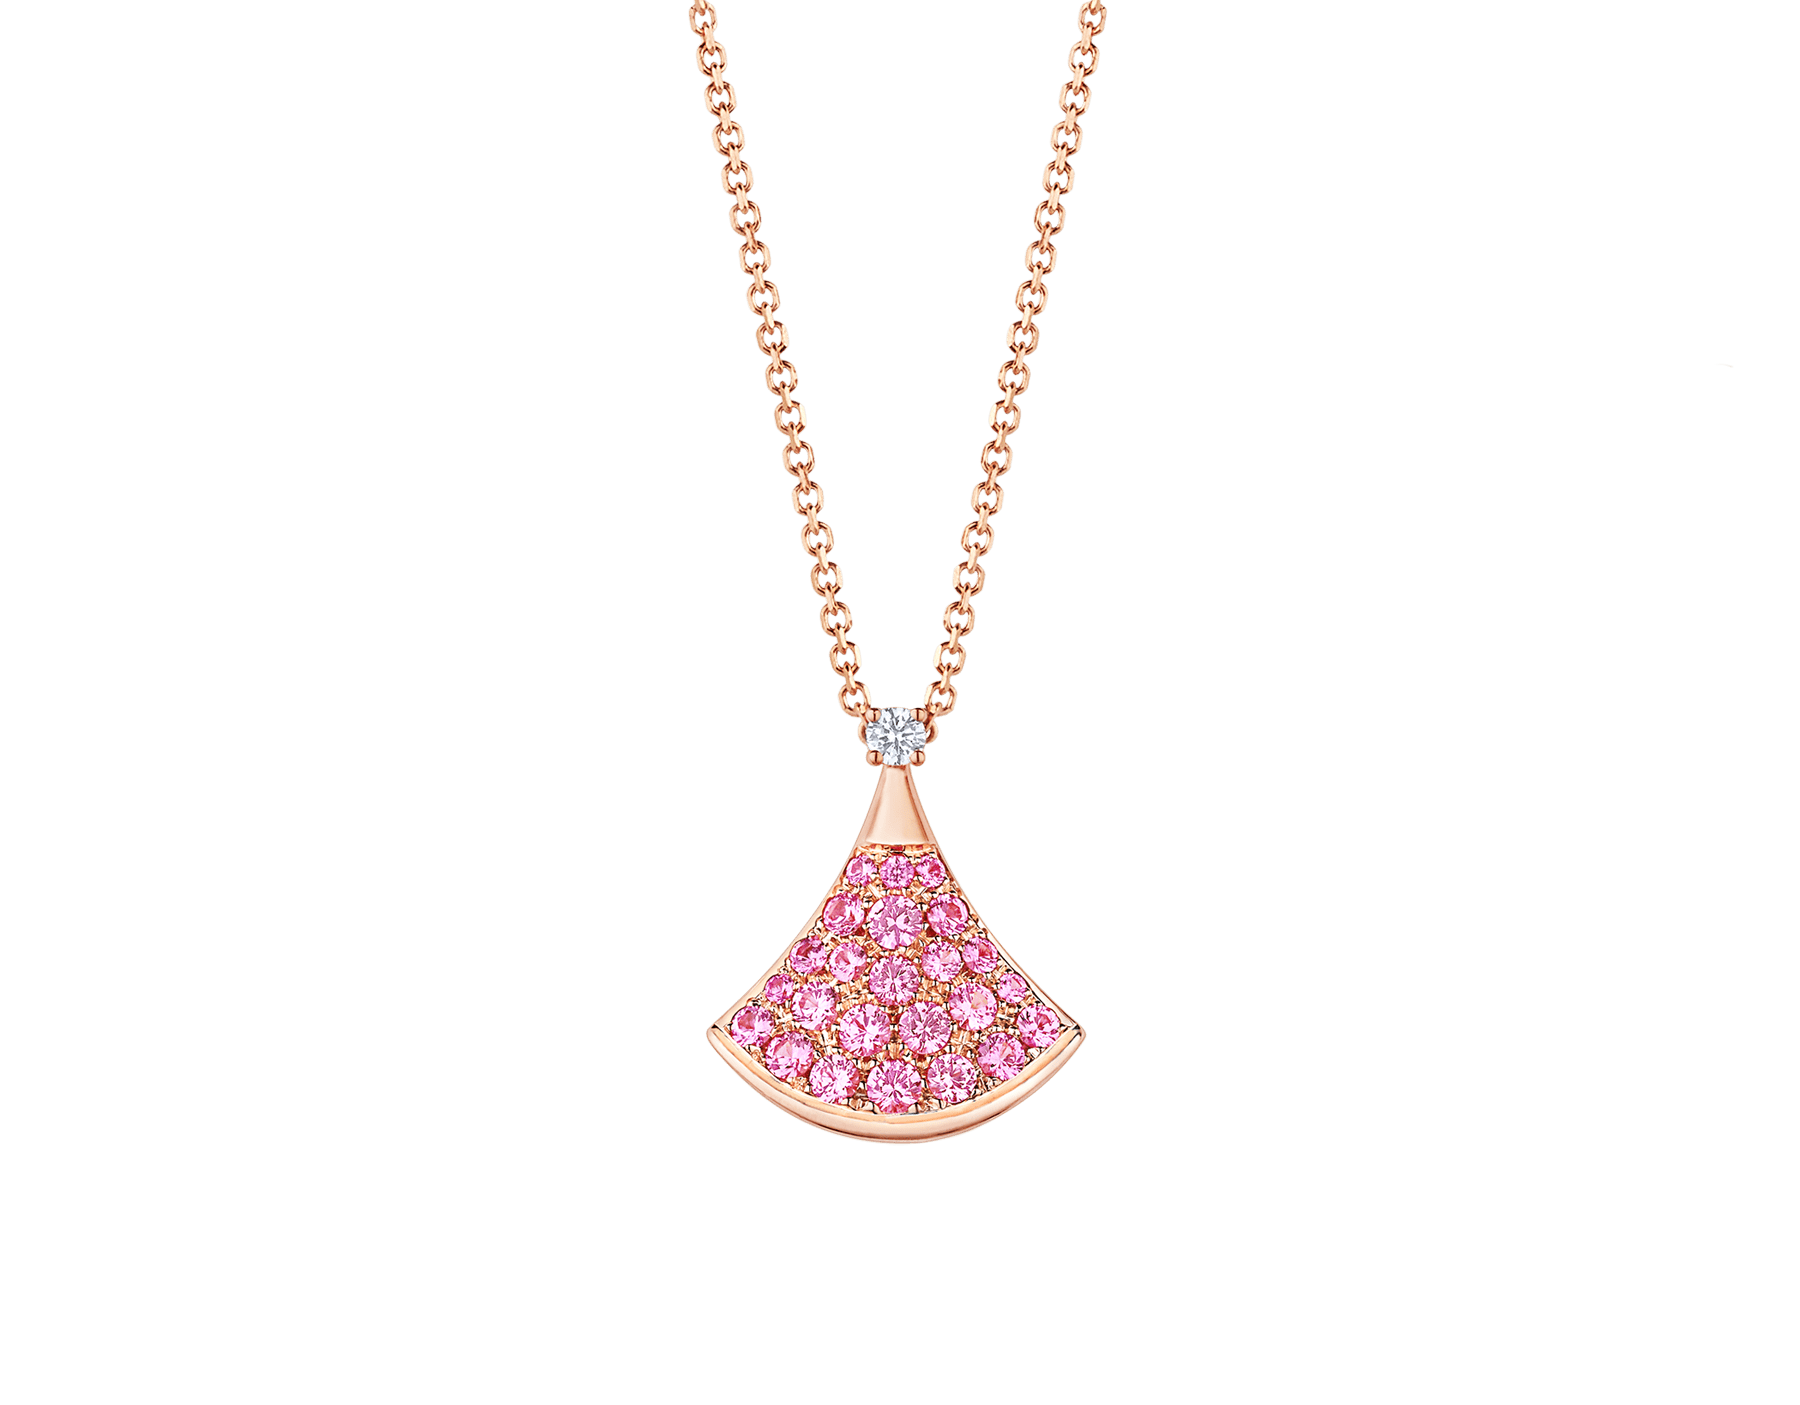 Collana con pendente DIVAS' DREAM in oro rosa 18 kt con pavé di zaffiri rosa (0,55 ct) e diamante. 355889 image 1